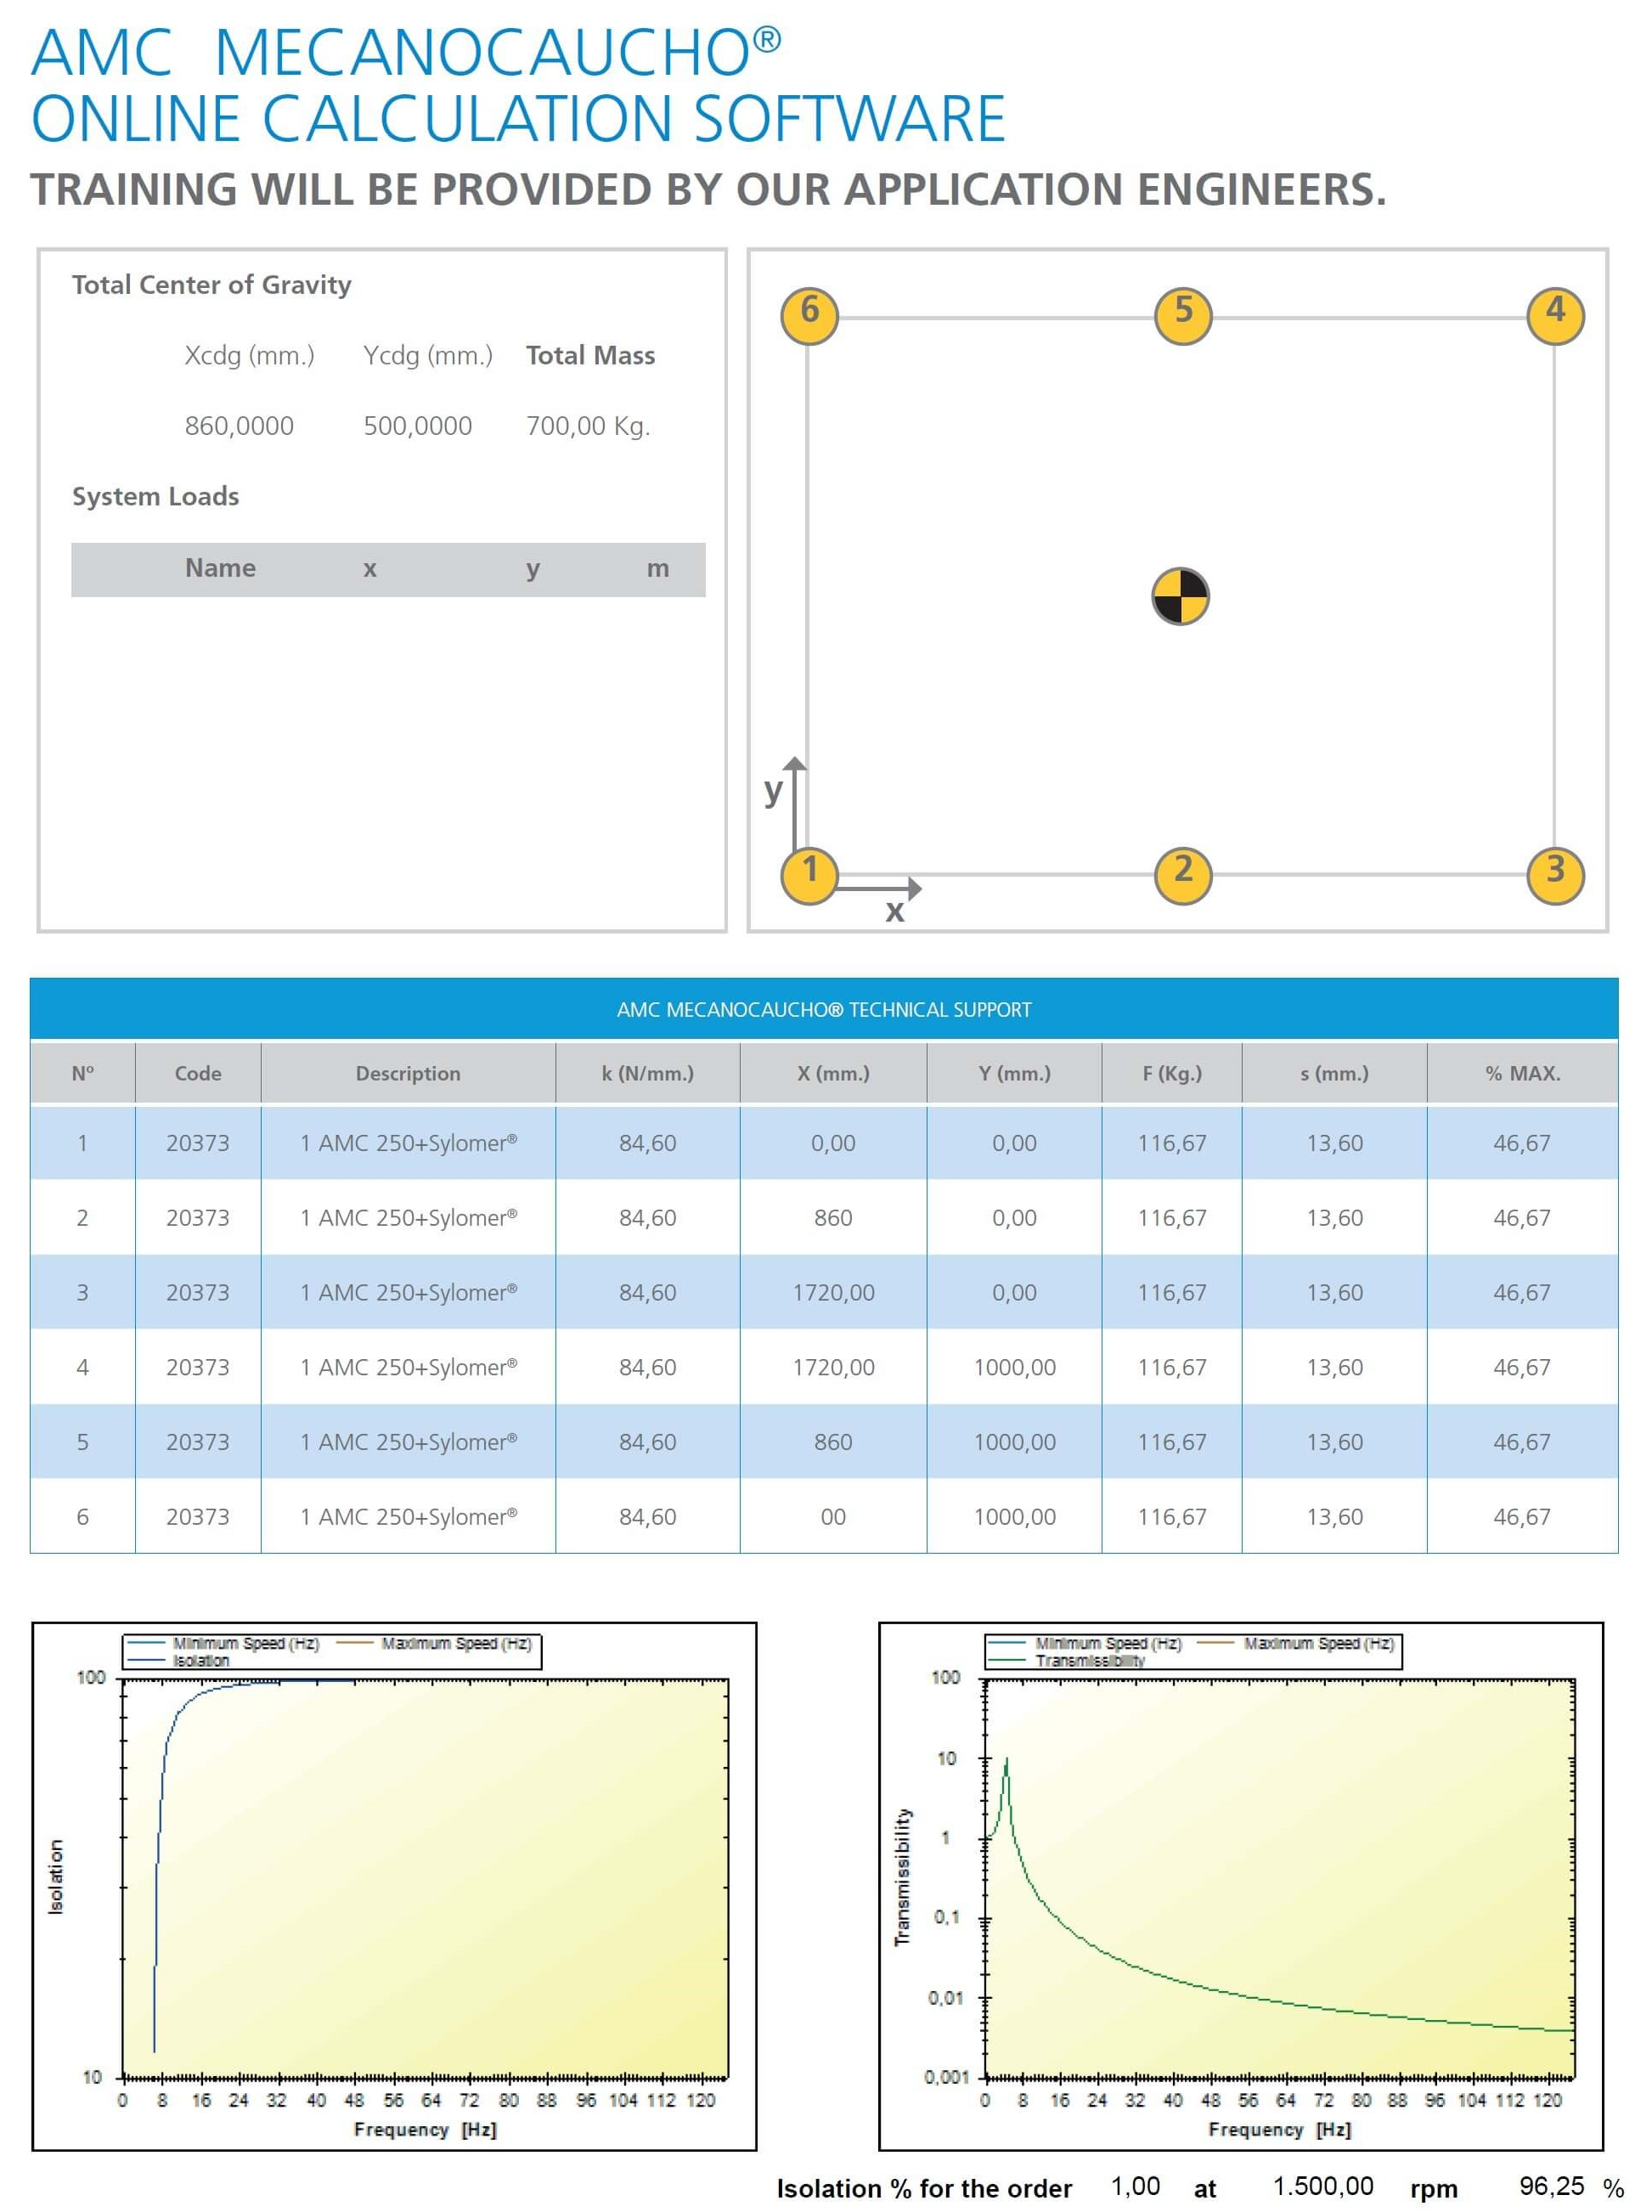 amc-mecanocaucho-online-calculation-software.jpg